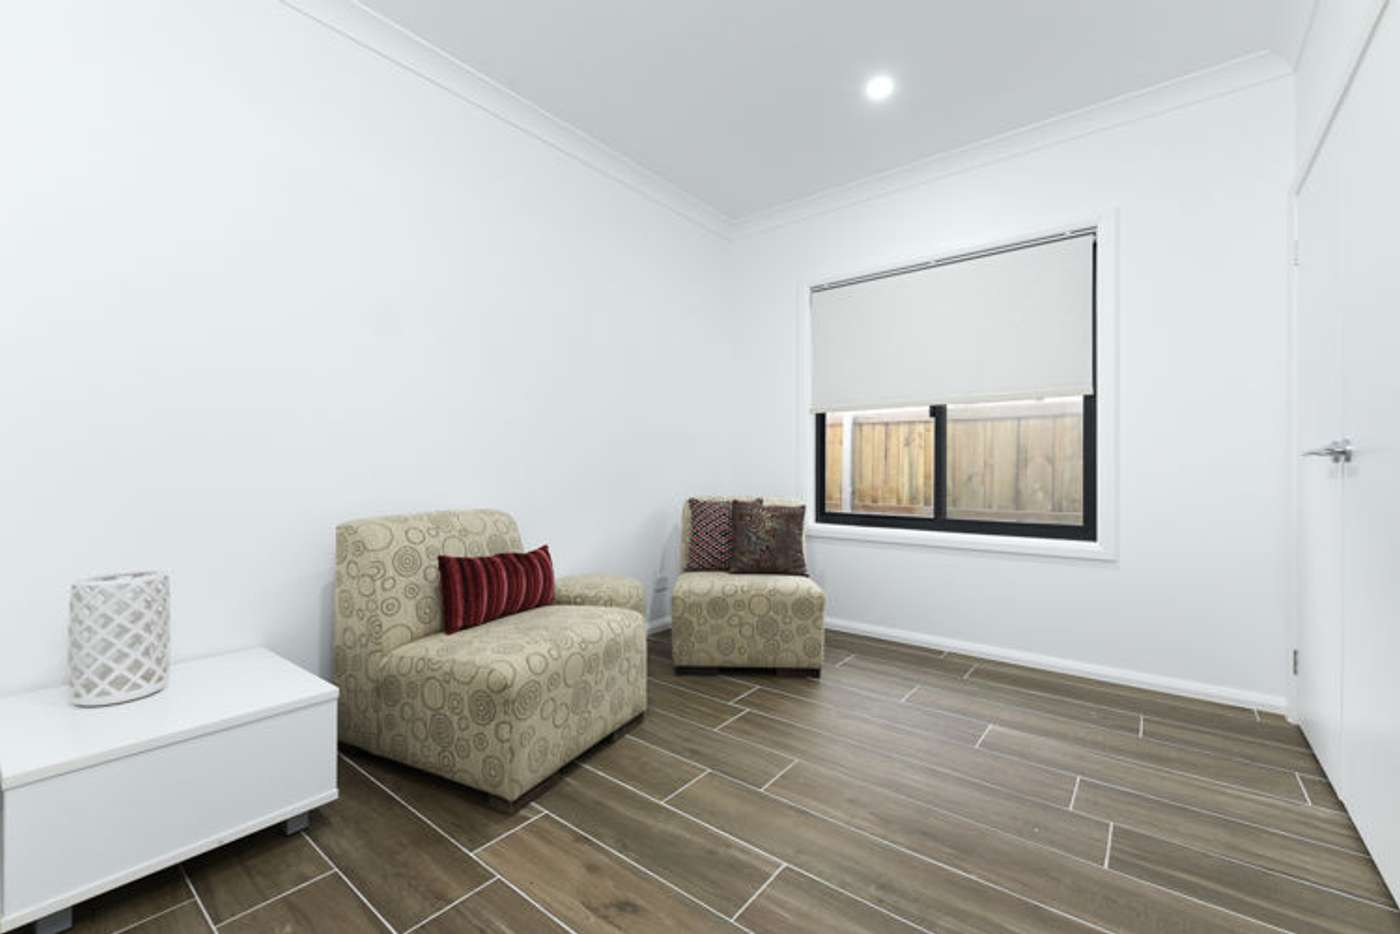 Sixth view of Homely house listing, 90 Silvester Way, Gledswood Hills NSW 2557